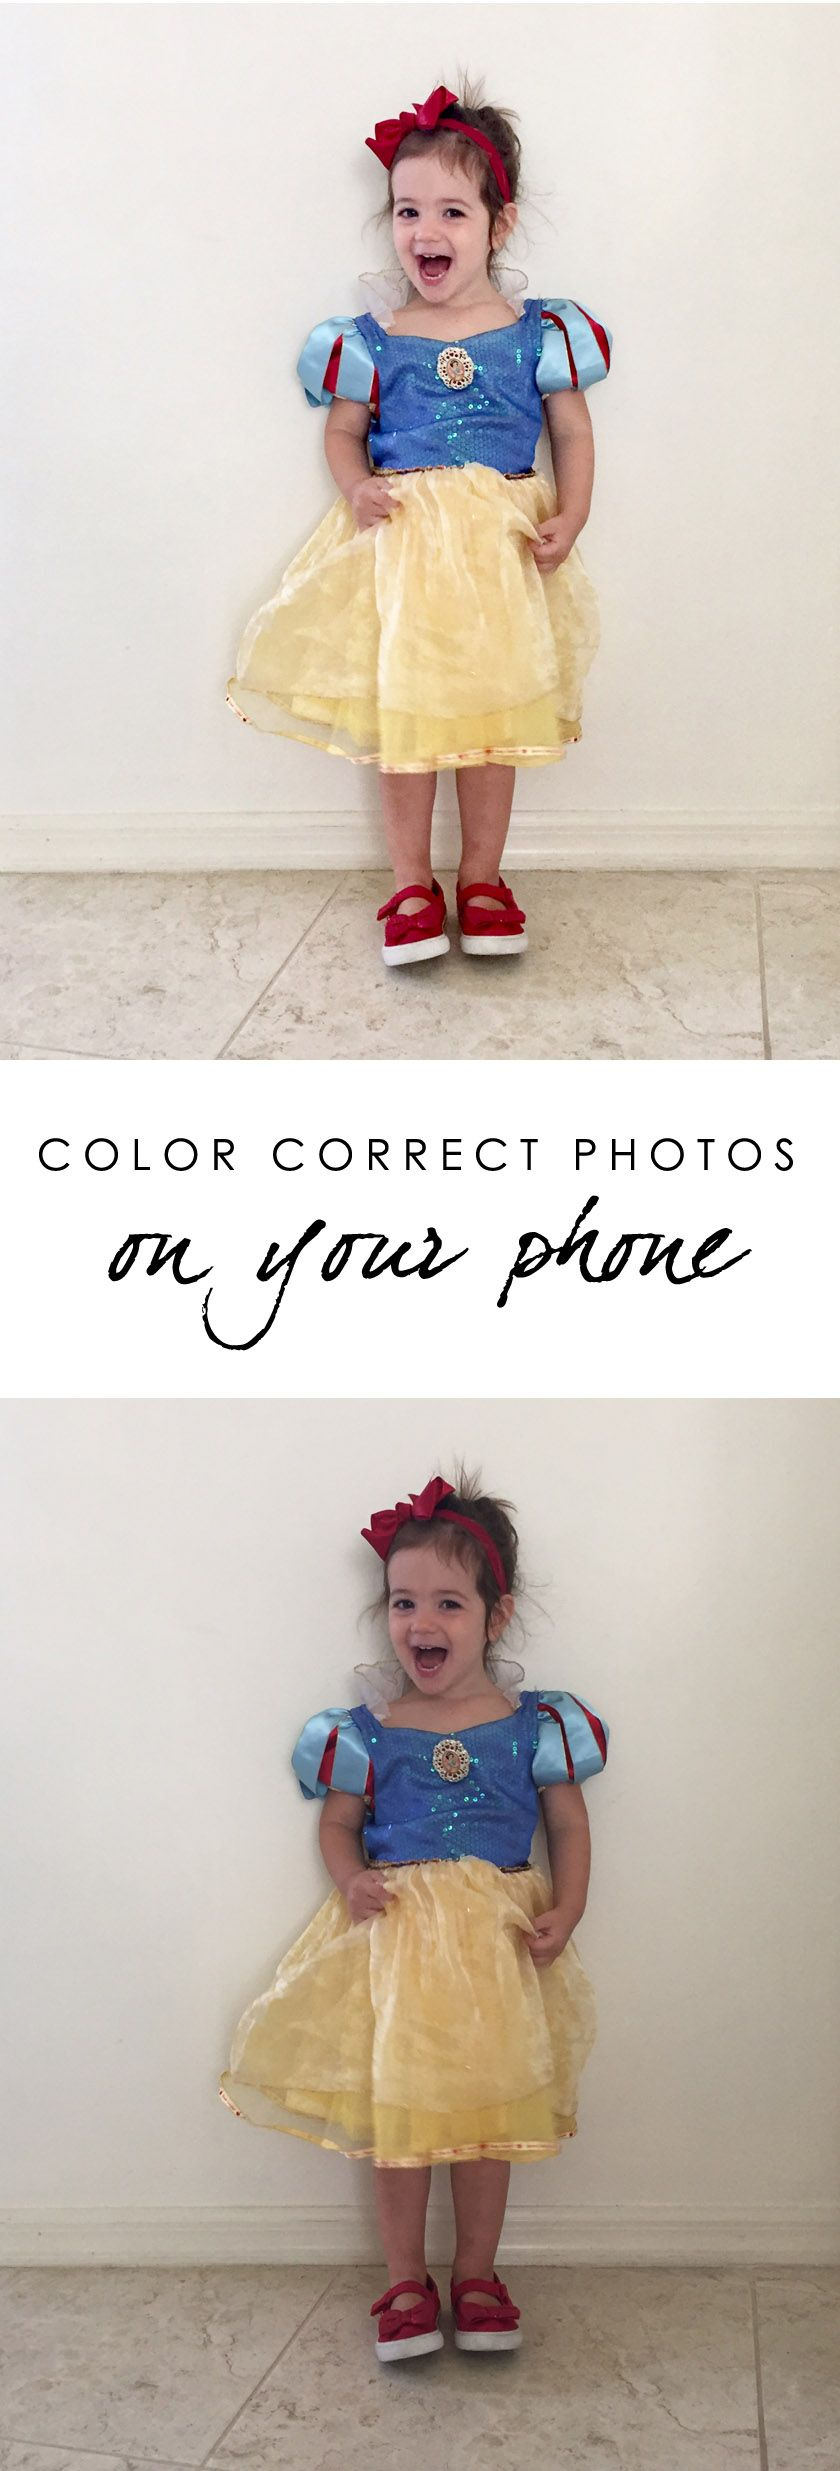 How to color correct photos on your iPhone Color